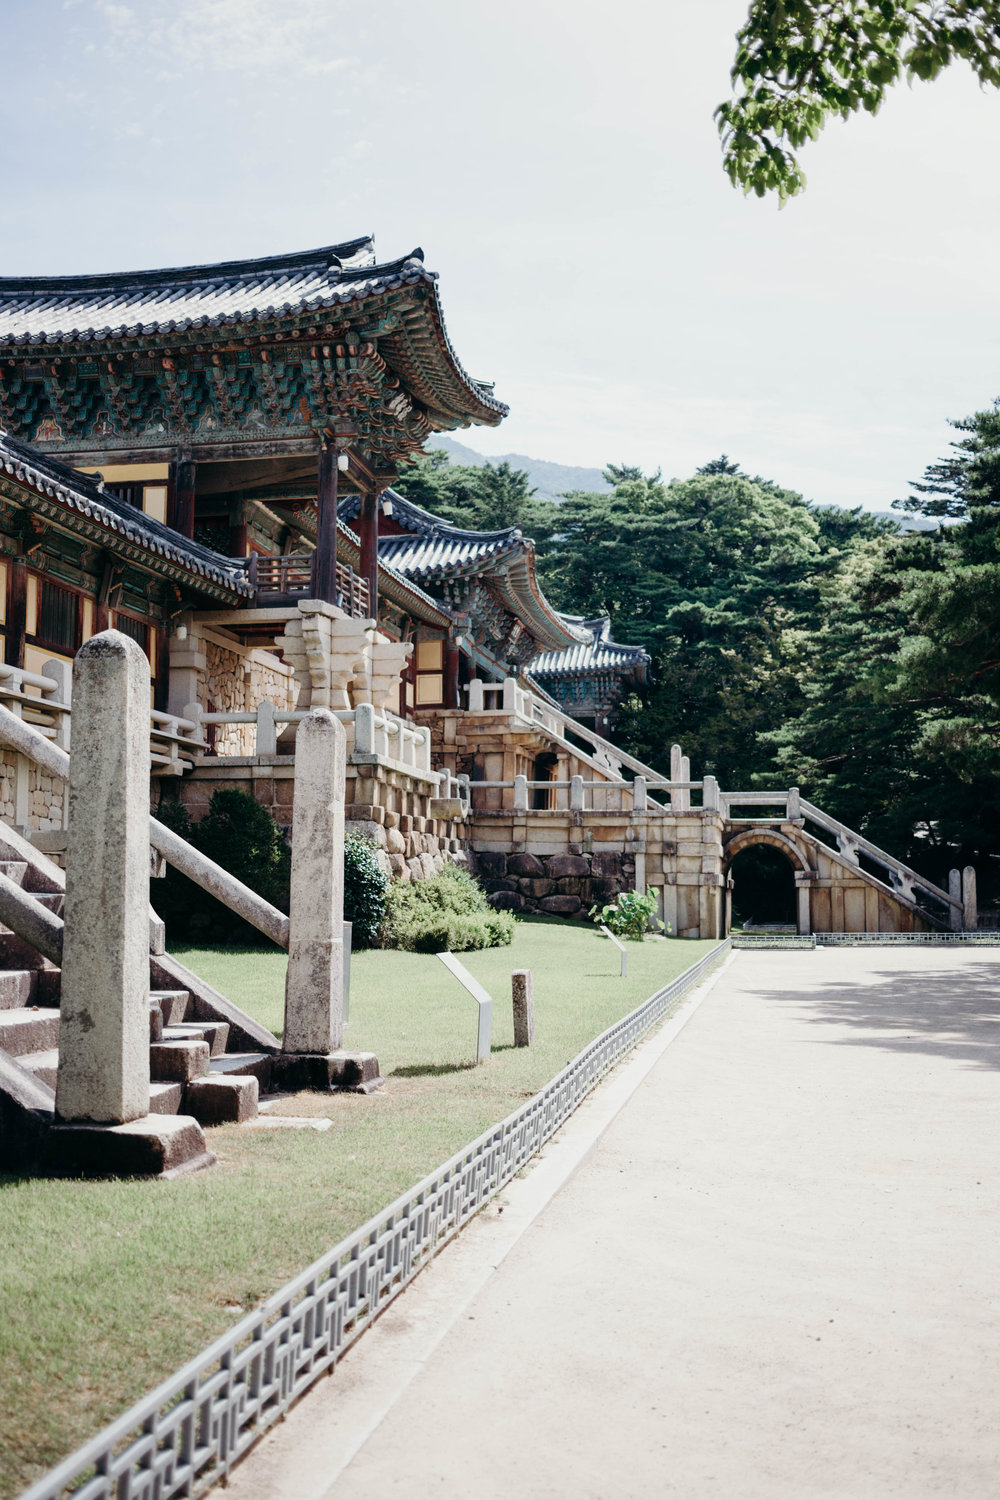 Gyeongju, South Korea: The City That Stole My Heart | On the Street Where We Live (aretherelilactrees.com)  Bulguksa Temple